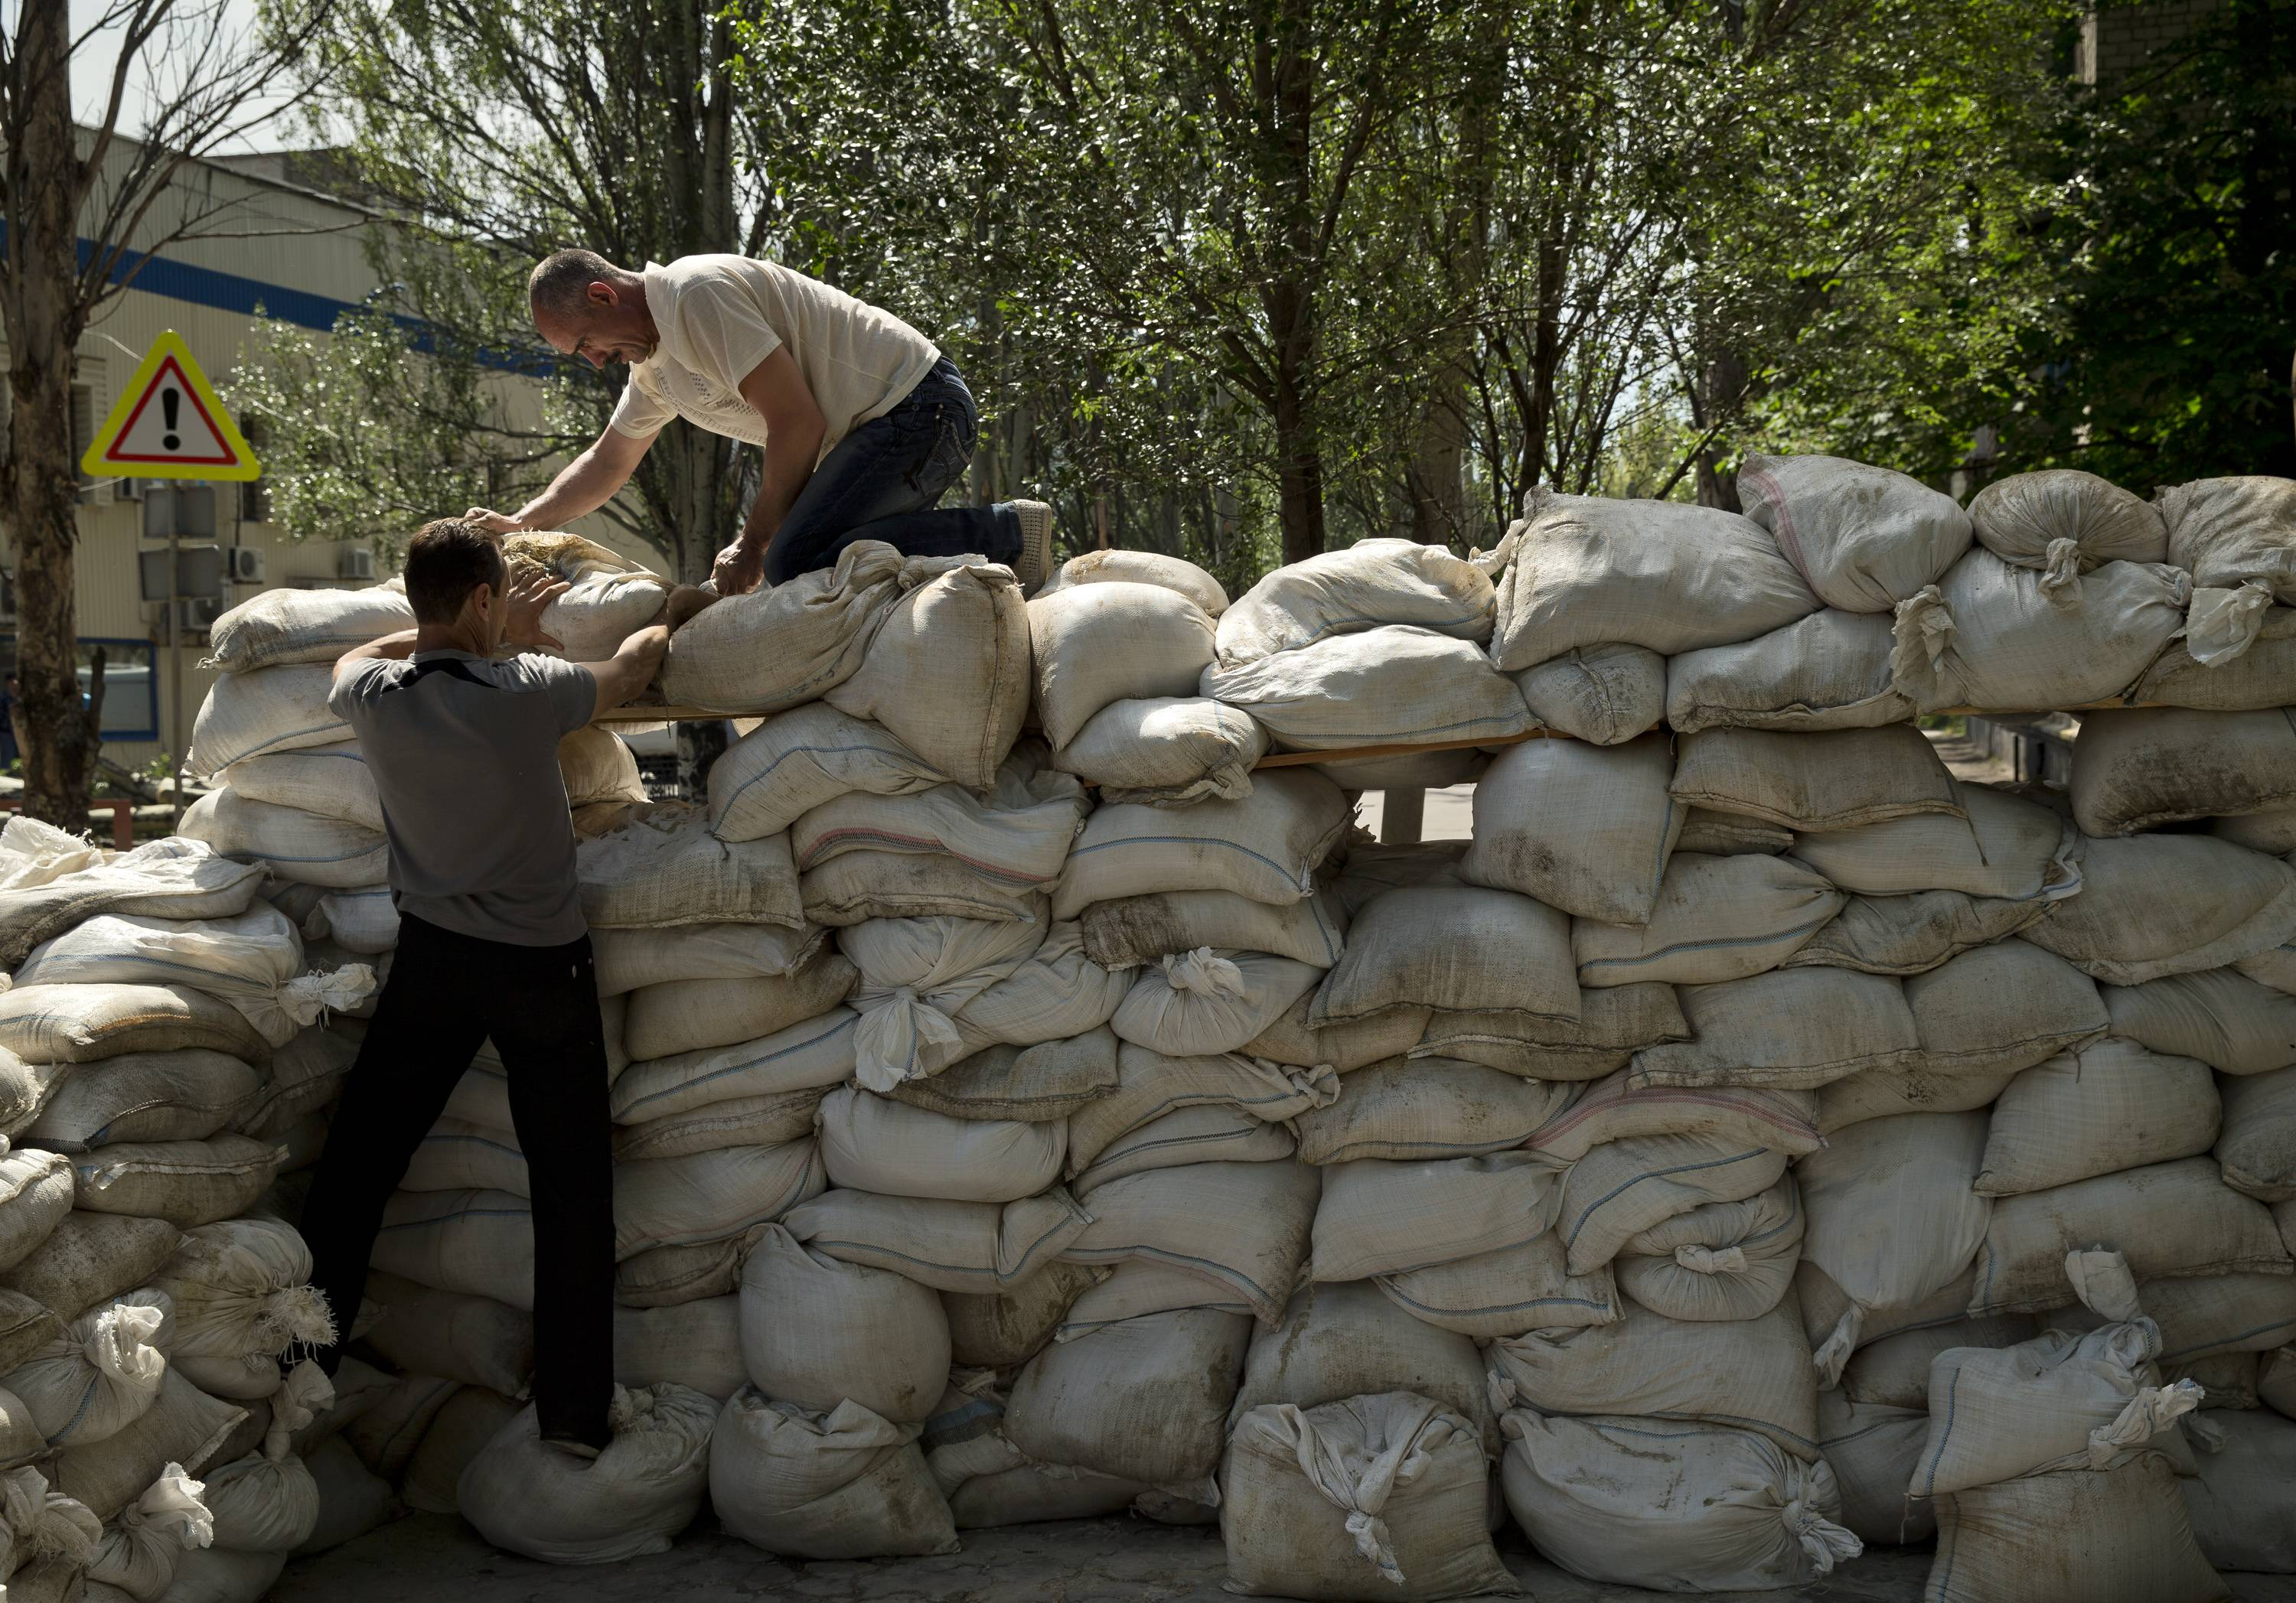 Ukraine fighting intensifies after election